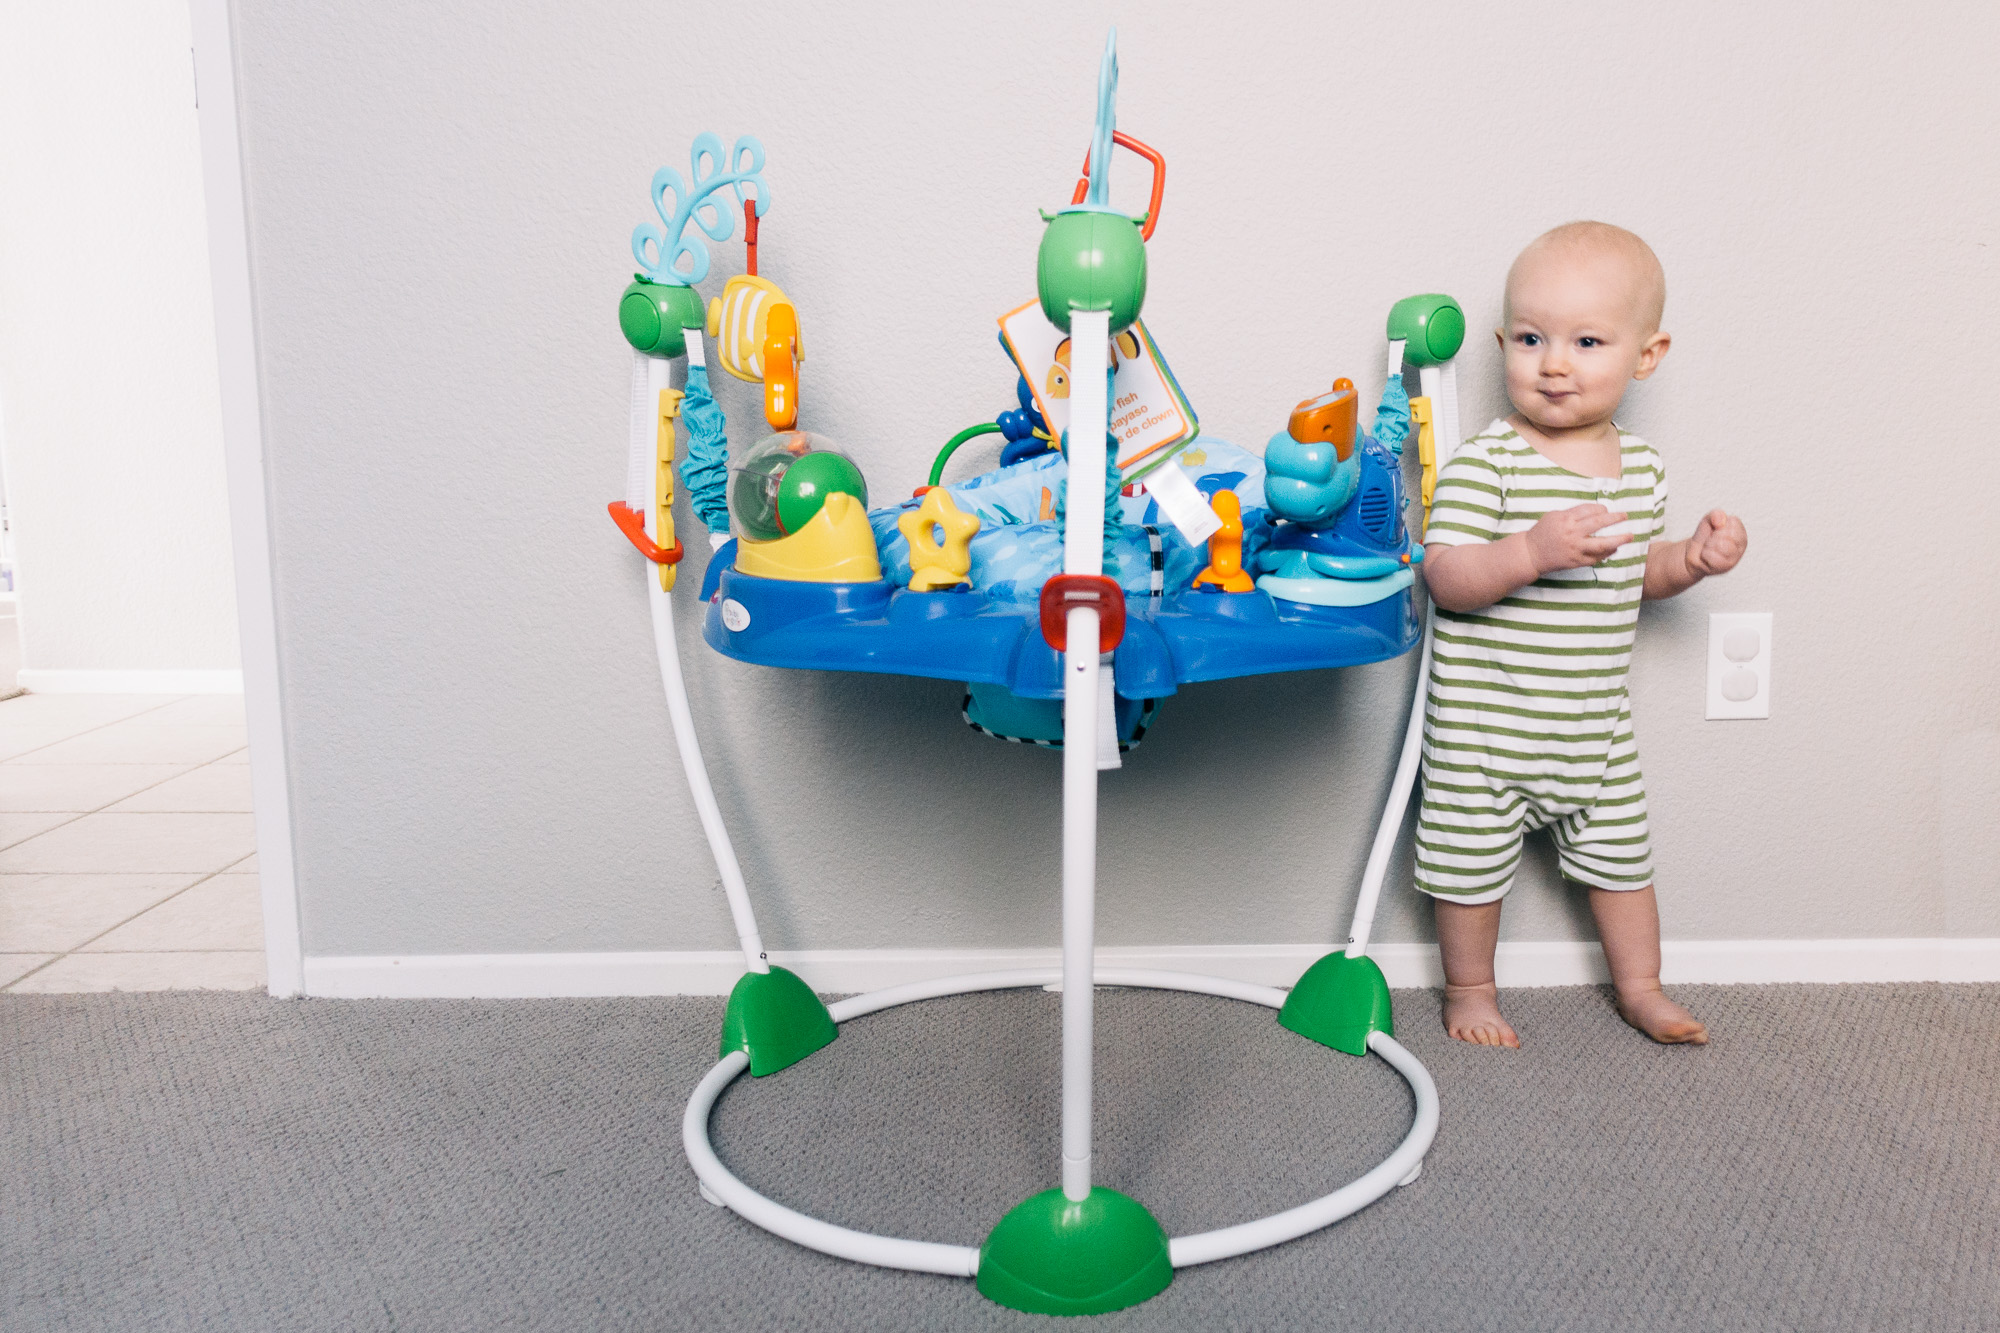 Baby Einstein 3 In 1 Jumper And Activity Mat Colors Of The Ocean Give The Perfect Gift For 12 Months Mrs Seacannon